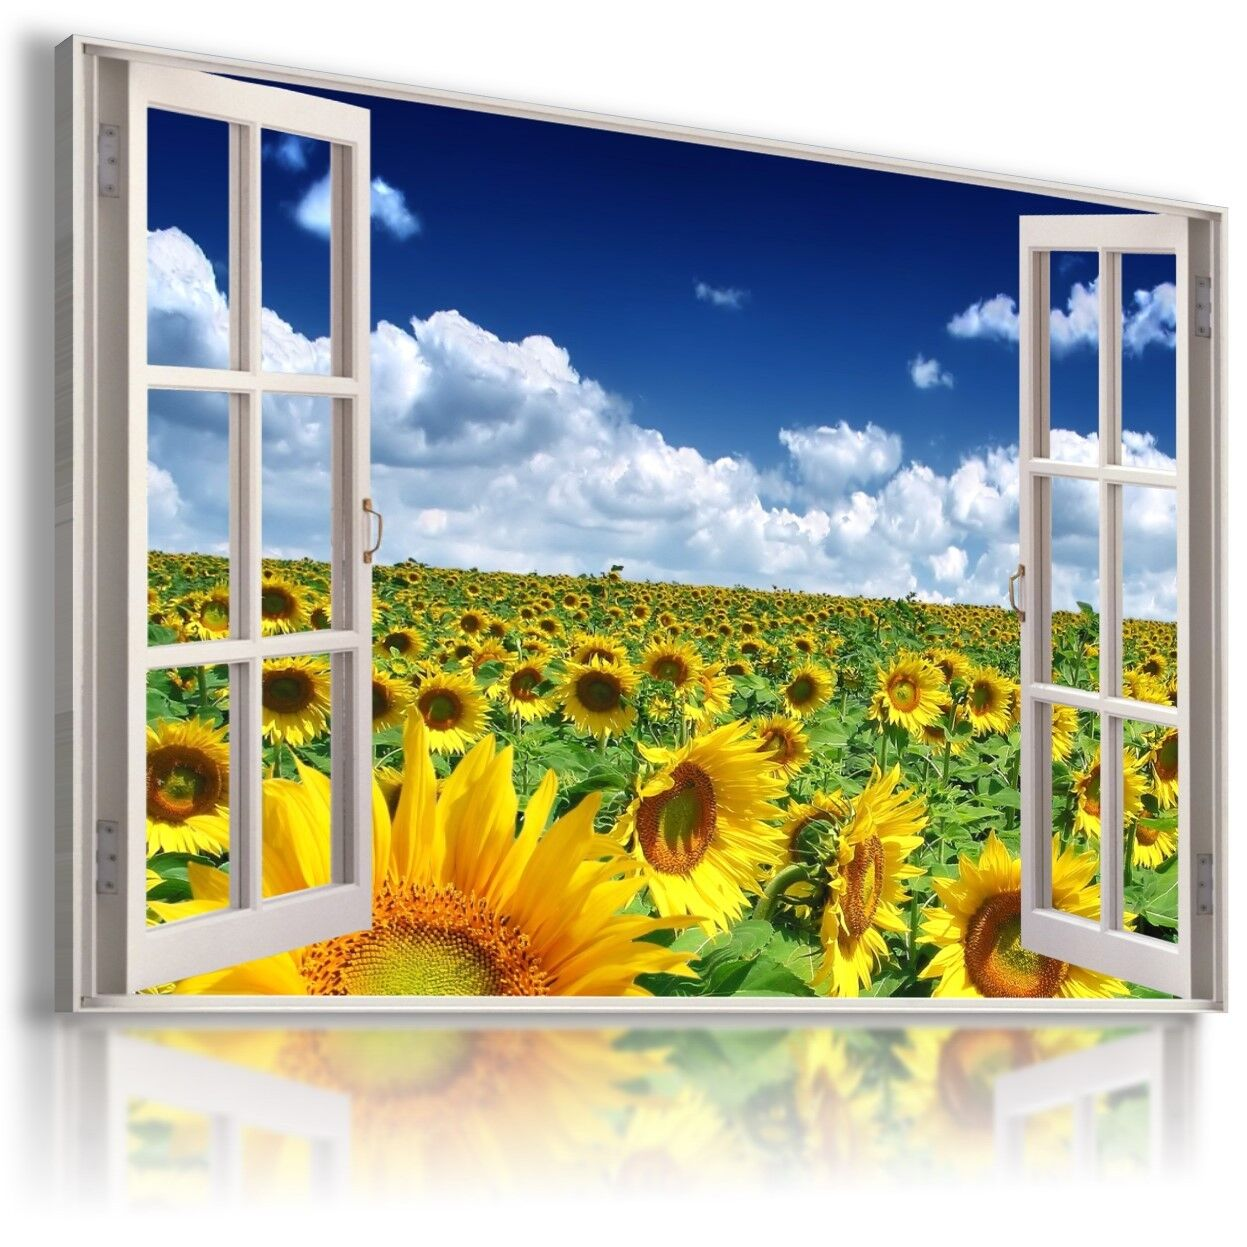 SUNFLOWERS FIELD FLOWERS 3D Window View Canvas Wall Art Picture Large W40 MATAGA